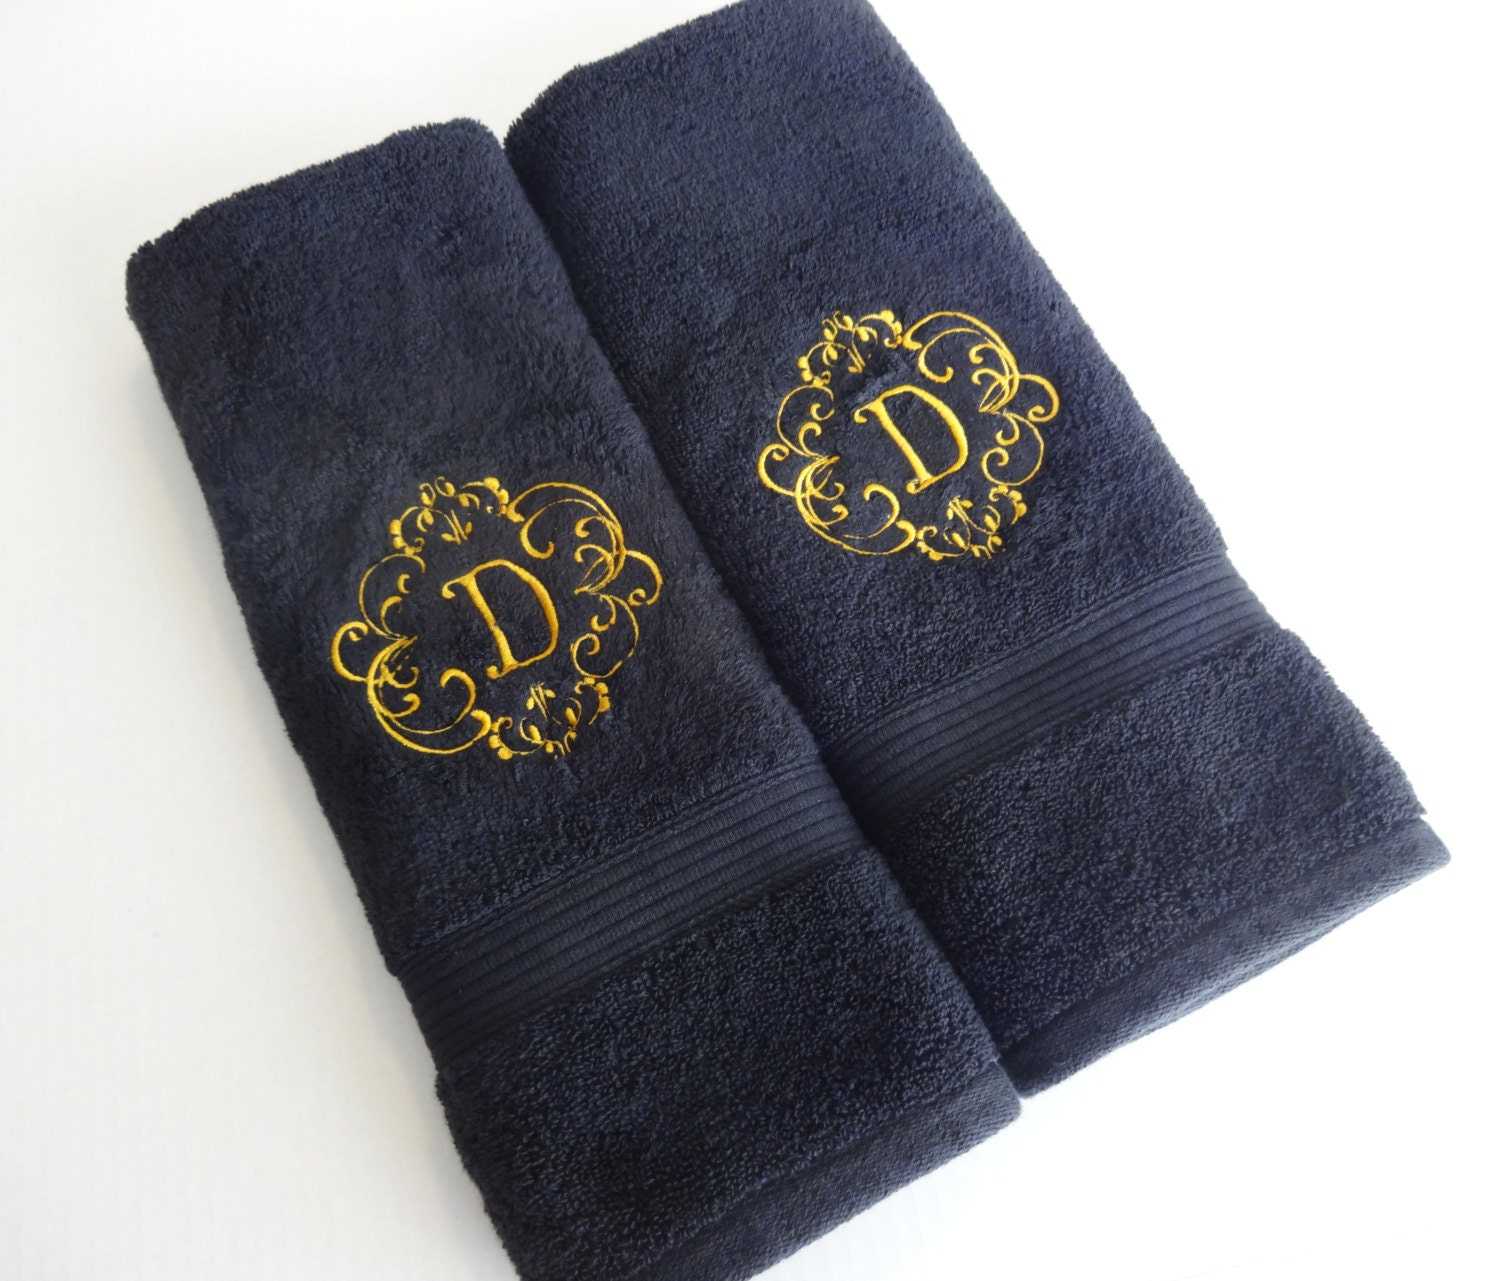 Hand Towels Bathroom: Custom Towels Hand Towel Bathroom Personalized Gift